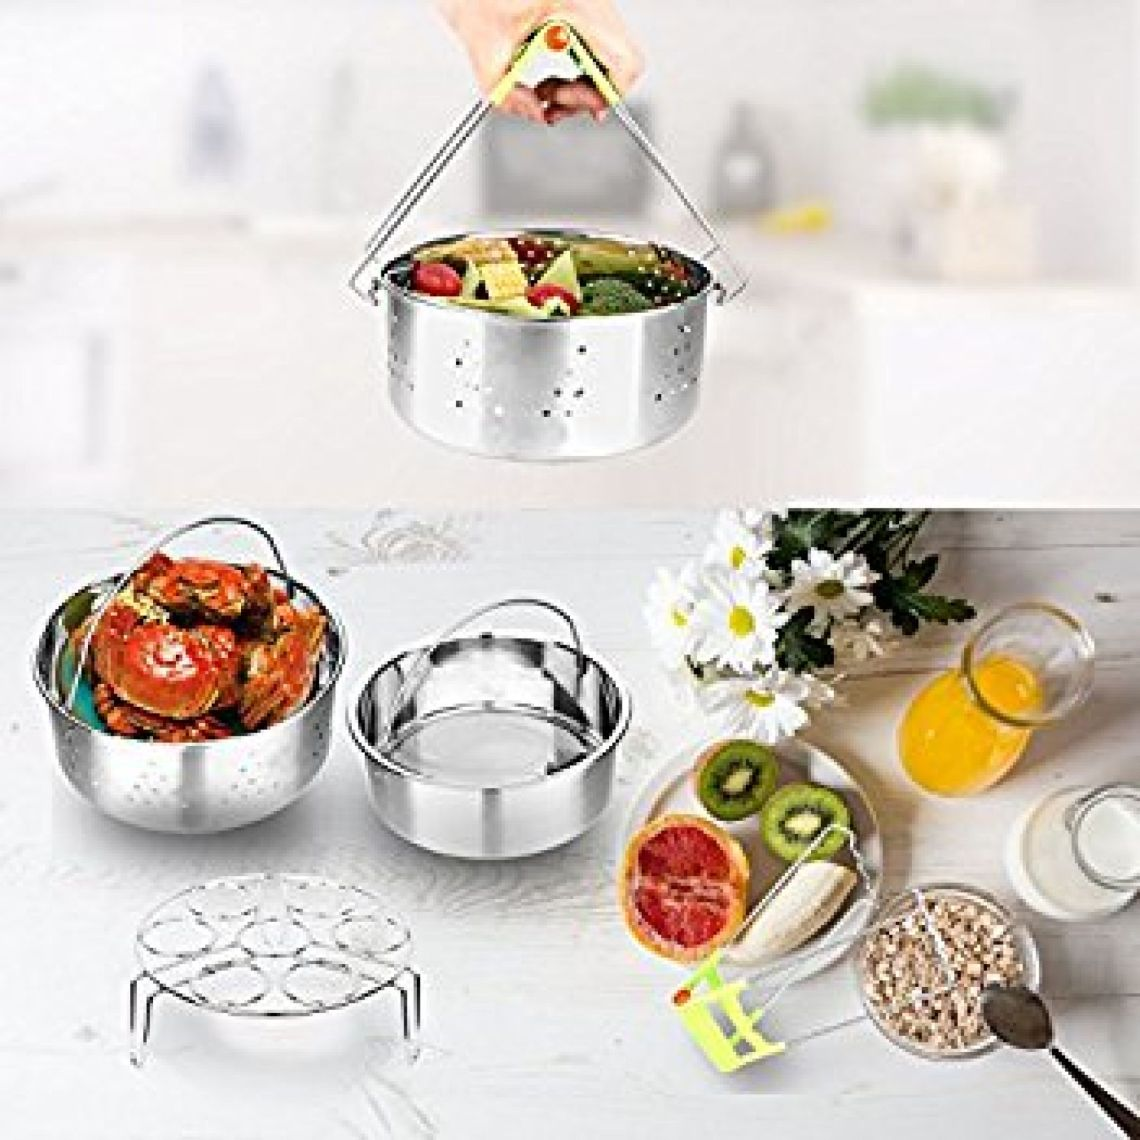 Amazon.com: Flourance Instant Pot Accessories for 6 qt 8 qt Includes:Steamer Basket, Insert Pan, Egg Steamer Rack, Jar Lifter.4 Sets of Pressure Cooker Accessories, Stainless Steel: Kitchen & Dining